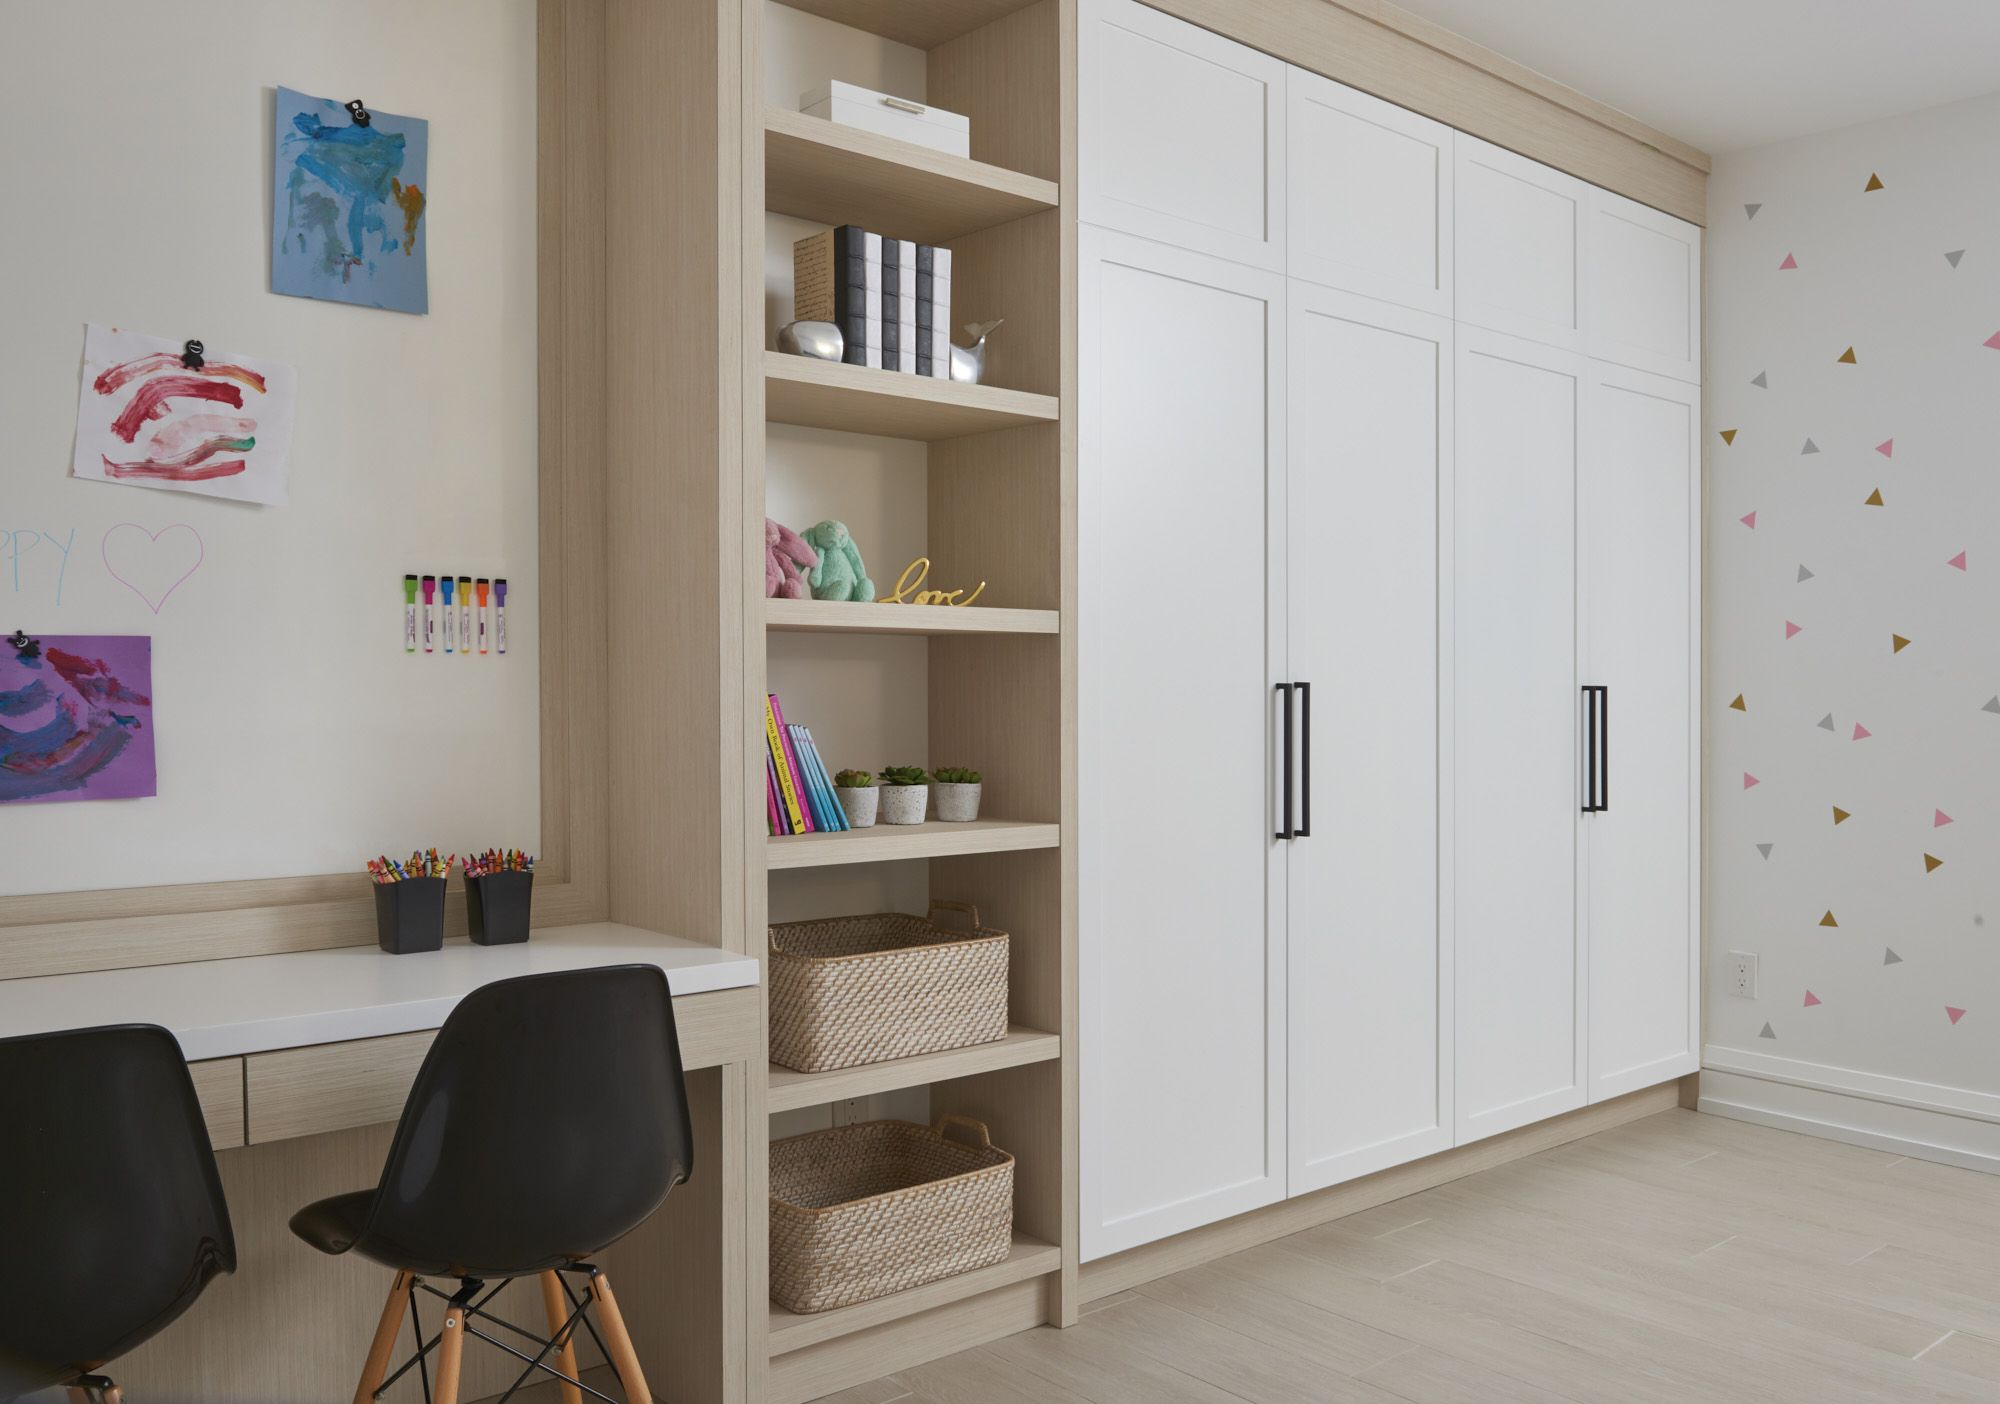 Playroom built-ins | Bedroom wall units, Wall unit, Built ins